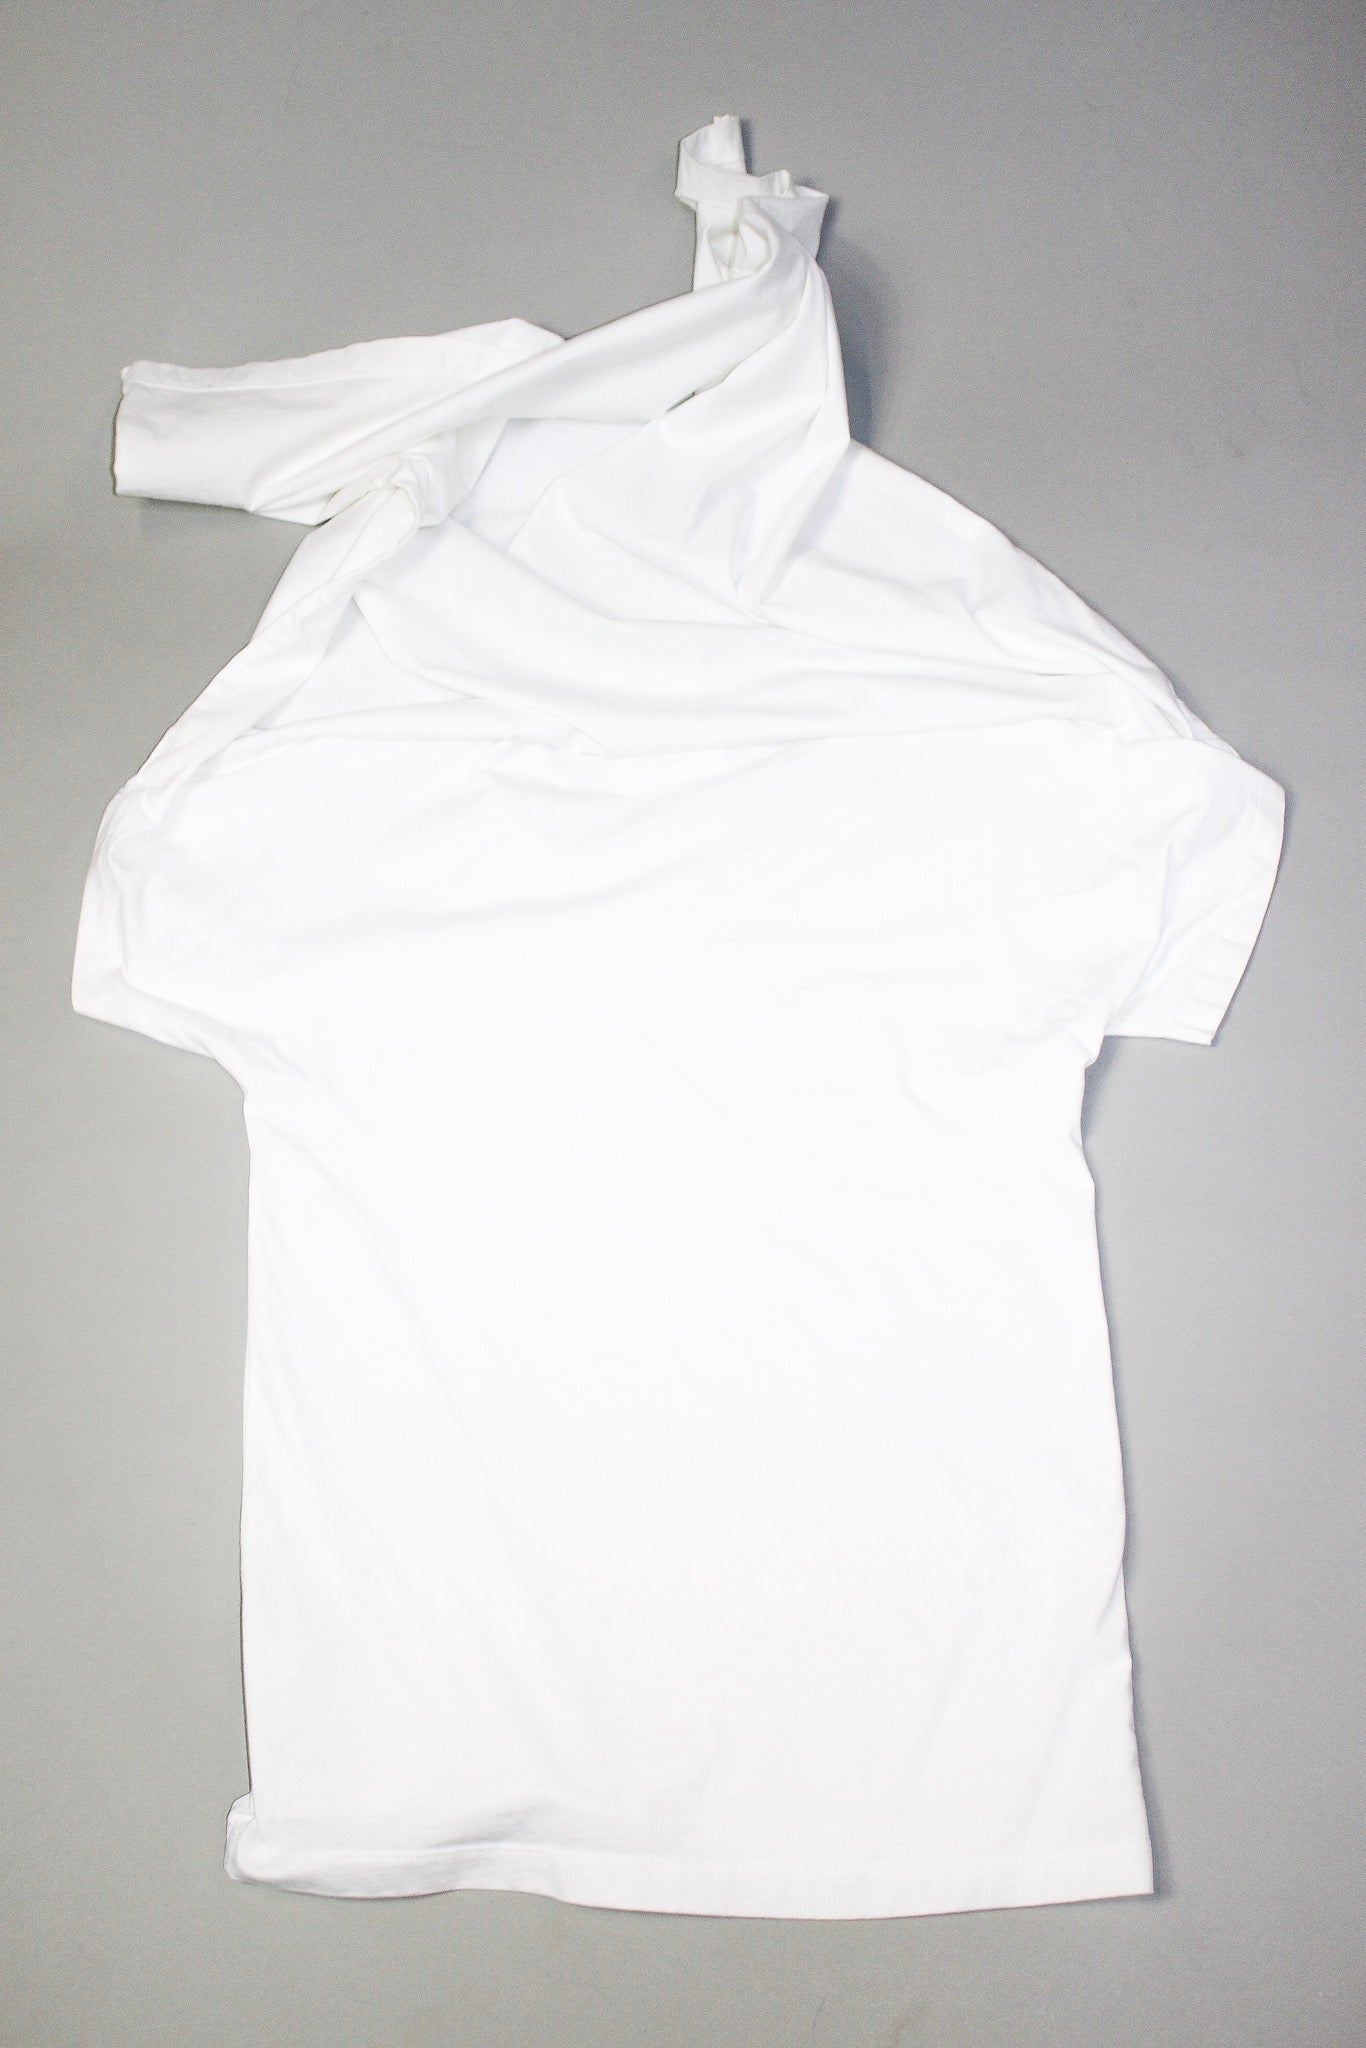 MM6 Maison Margiela Extra Fabric Tee